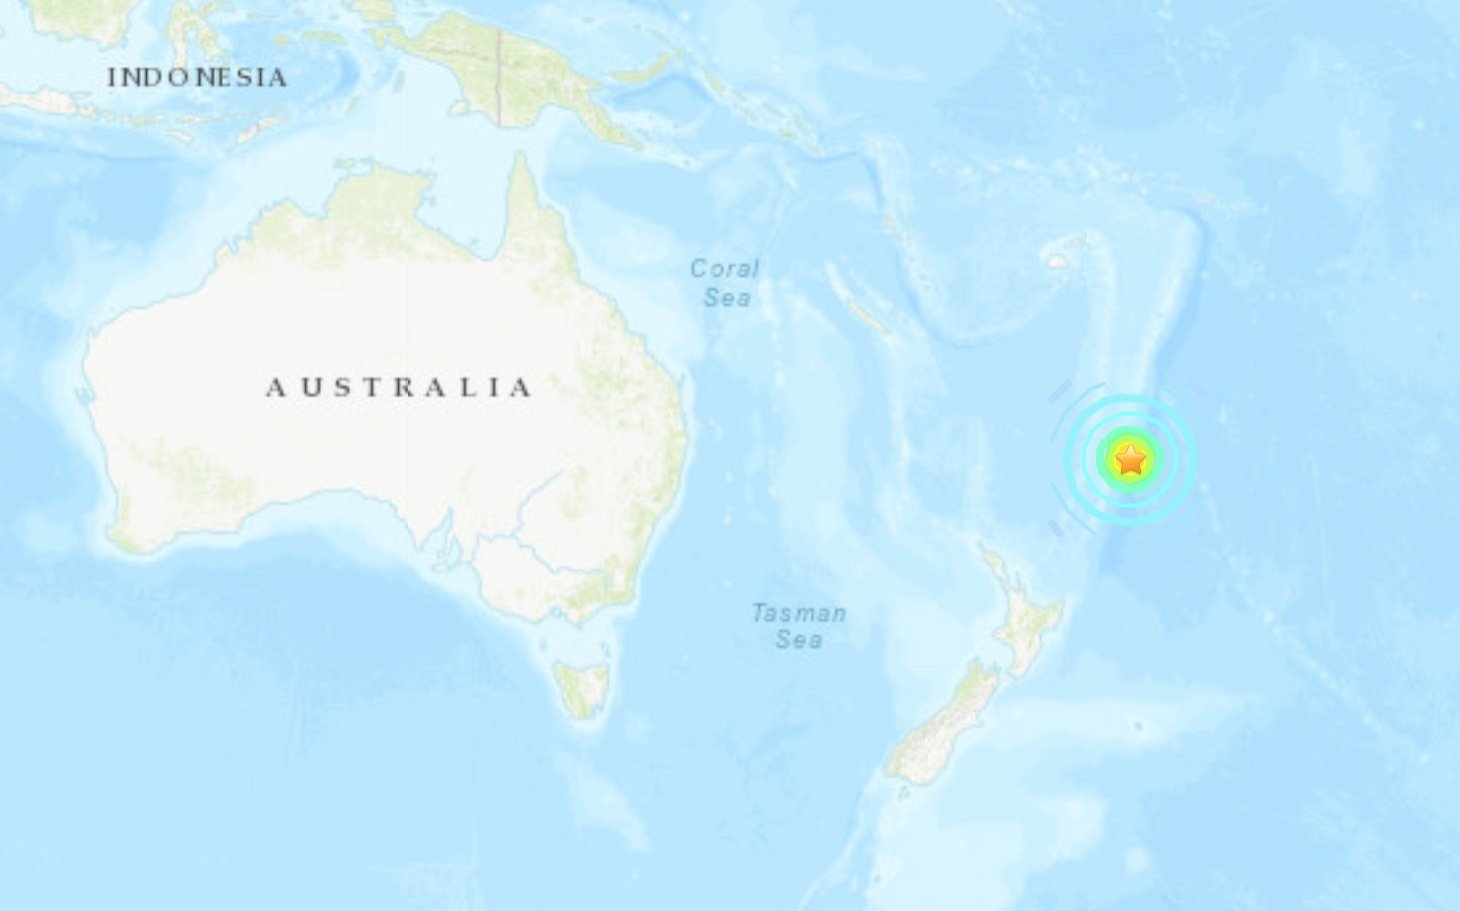 This screengrab from United States Geographical Survey (USGS) website shows the epicenter of the major earthquake